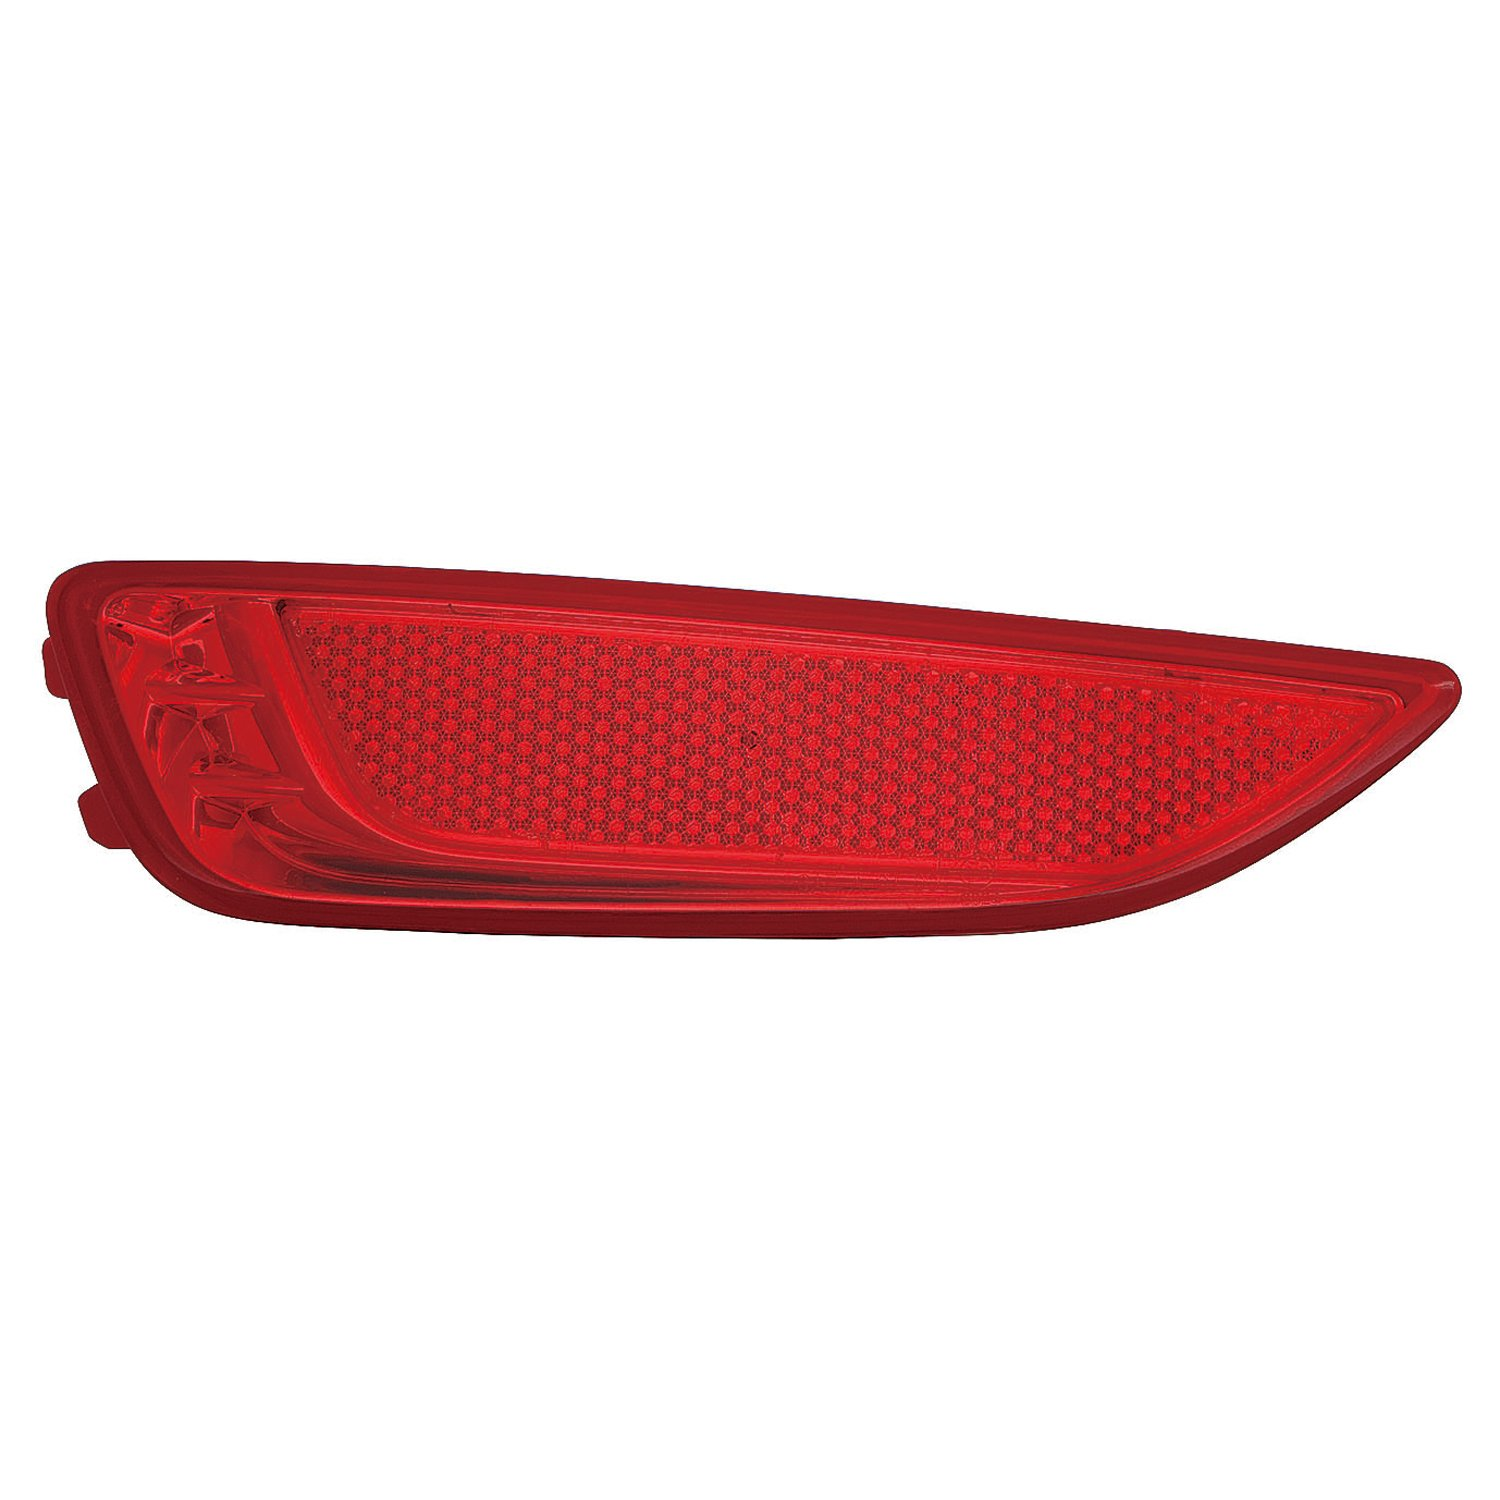 OE Replacement 2012-2016 HYUNDAI ACCENT/_HATCHBACK Bumper Reflector Partslink Number HY1184104 Multiple Manufacturers HY1184104C